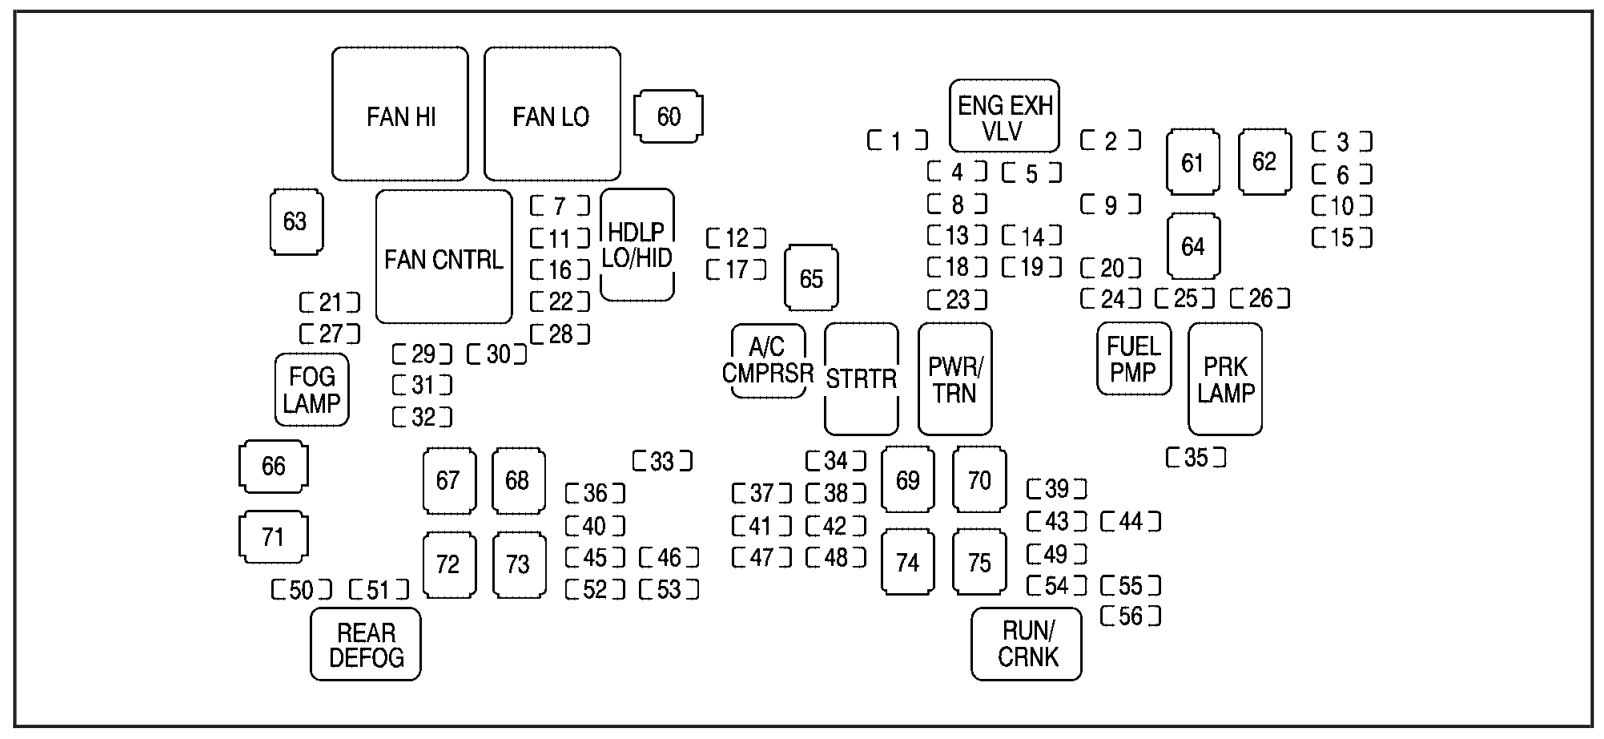 2003 tahoe fuse panel diagram